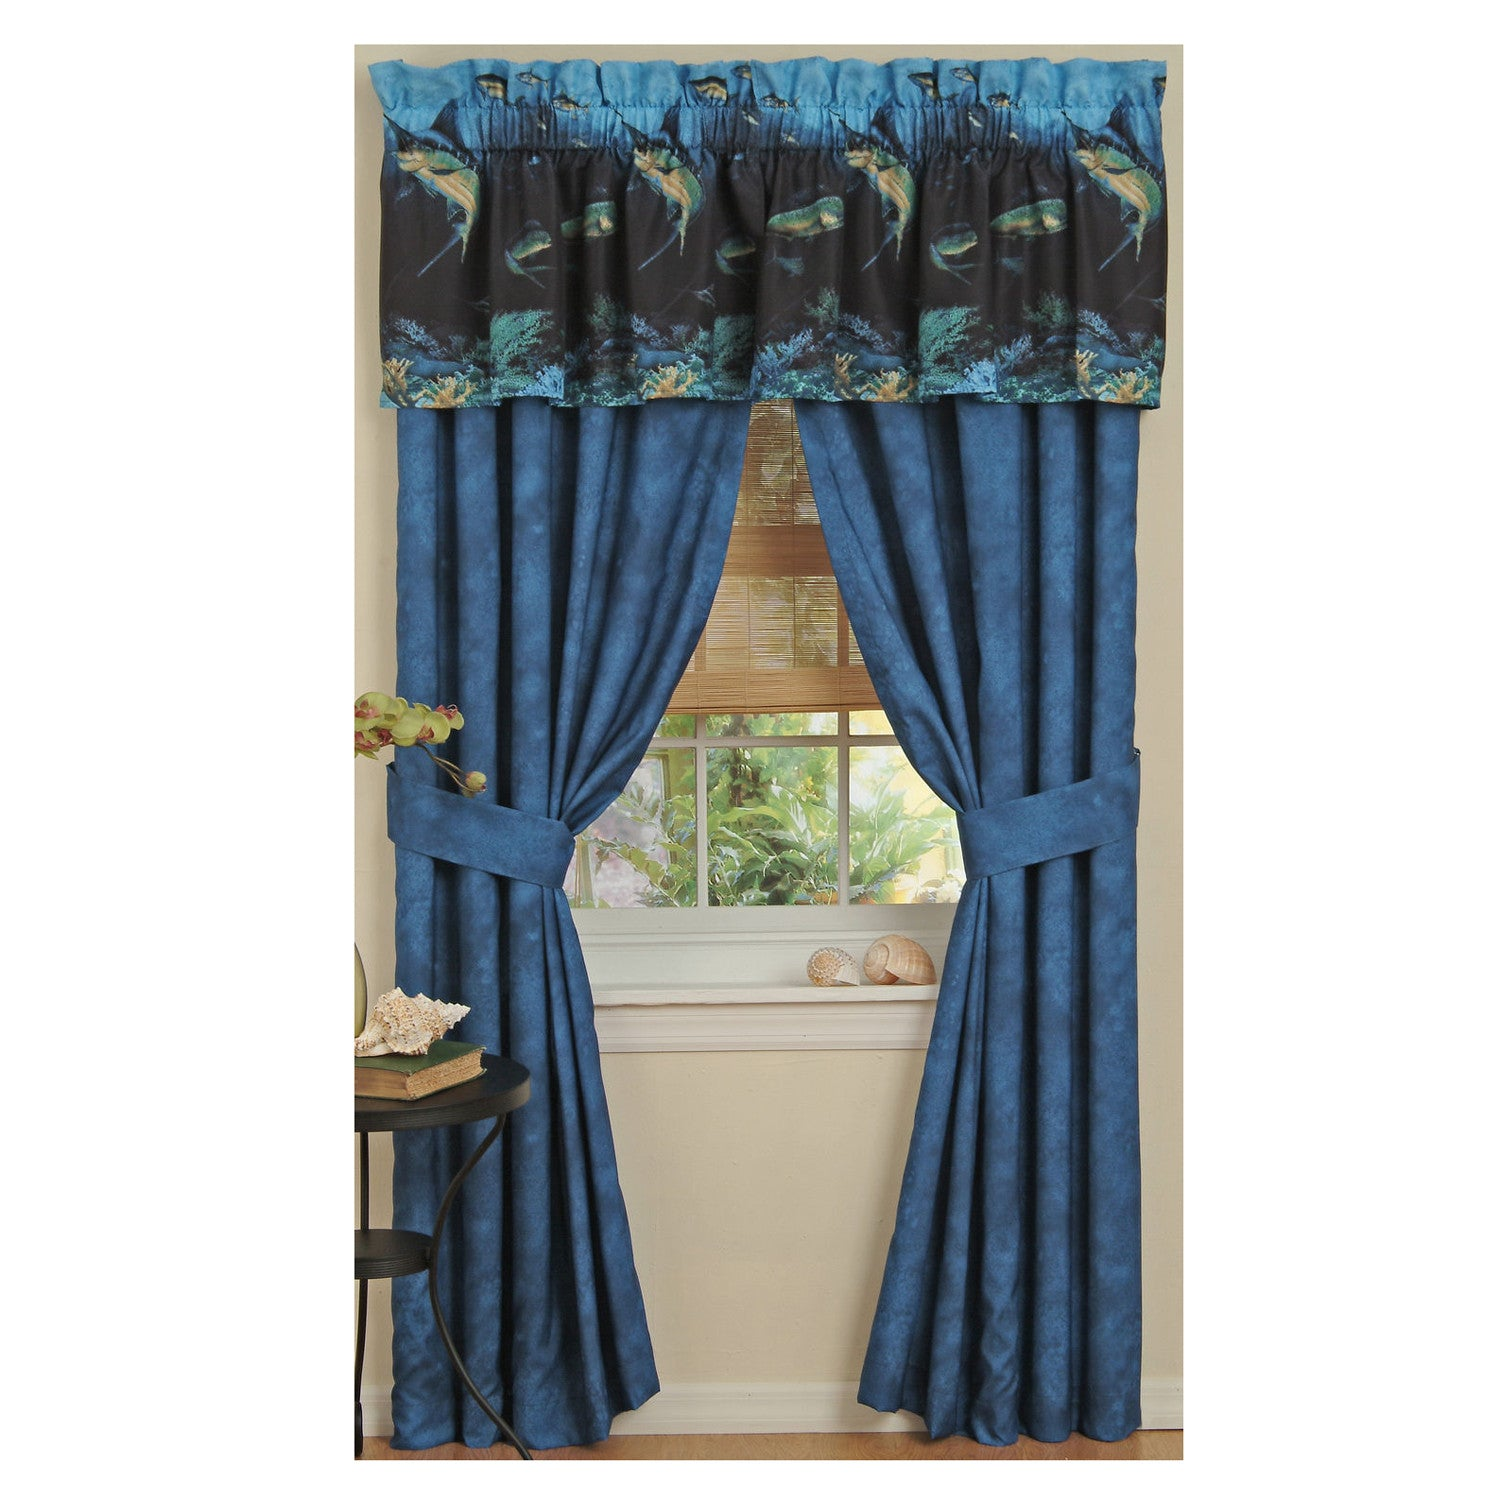 Coral Reef Valance - Back40Trading2